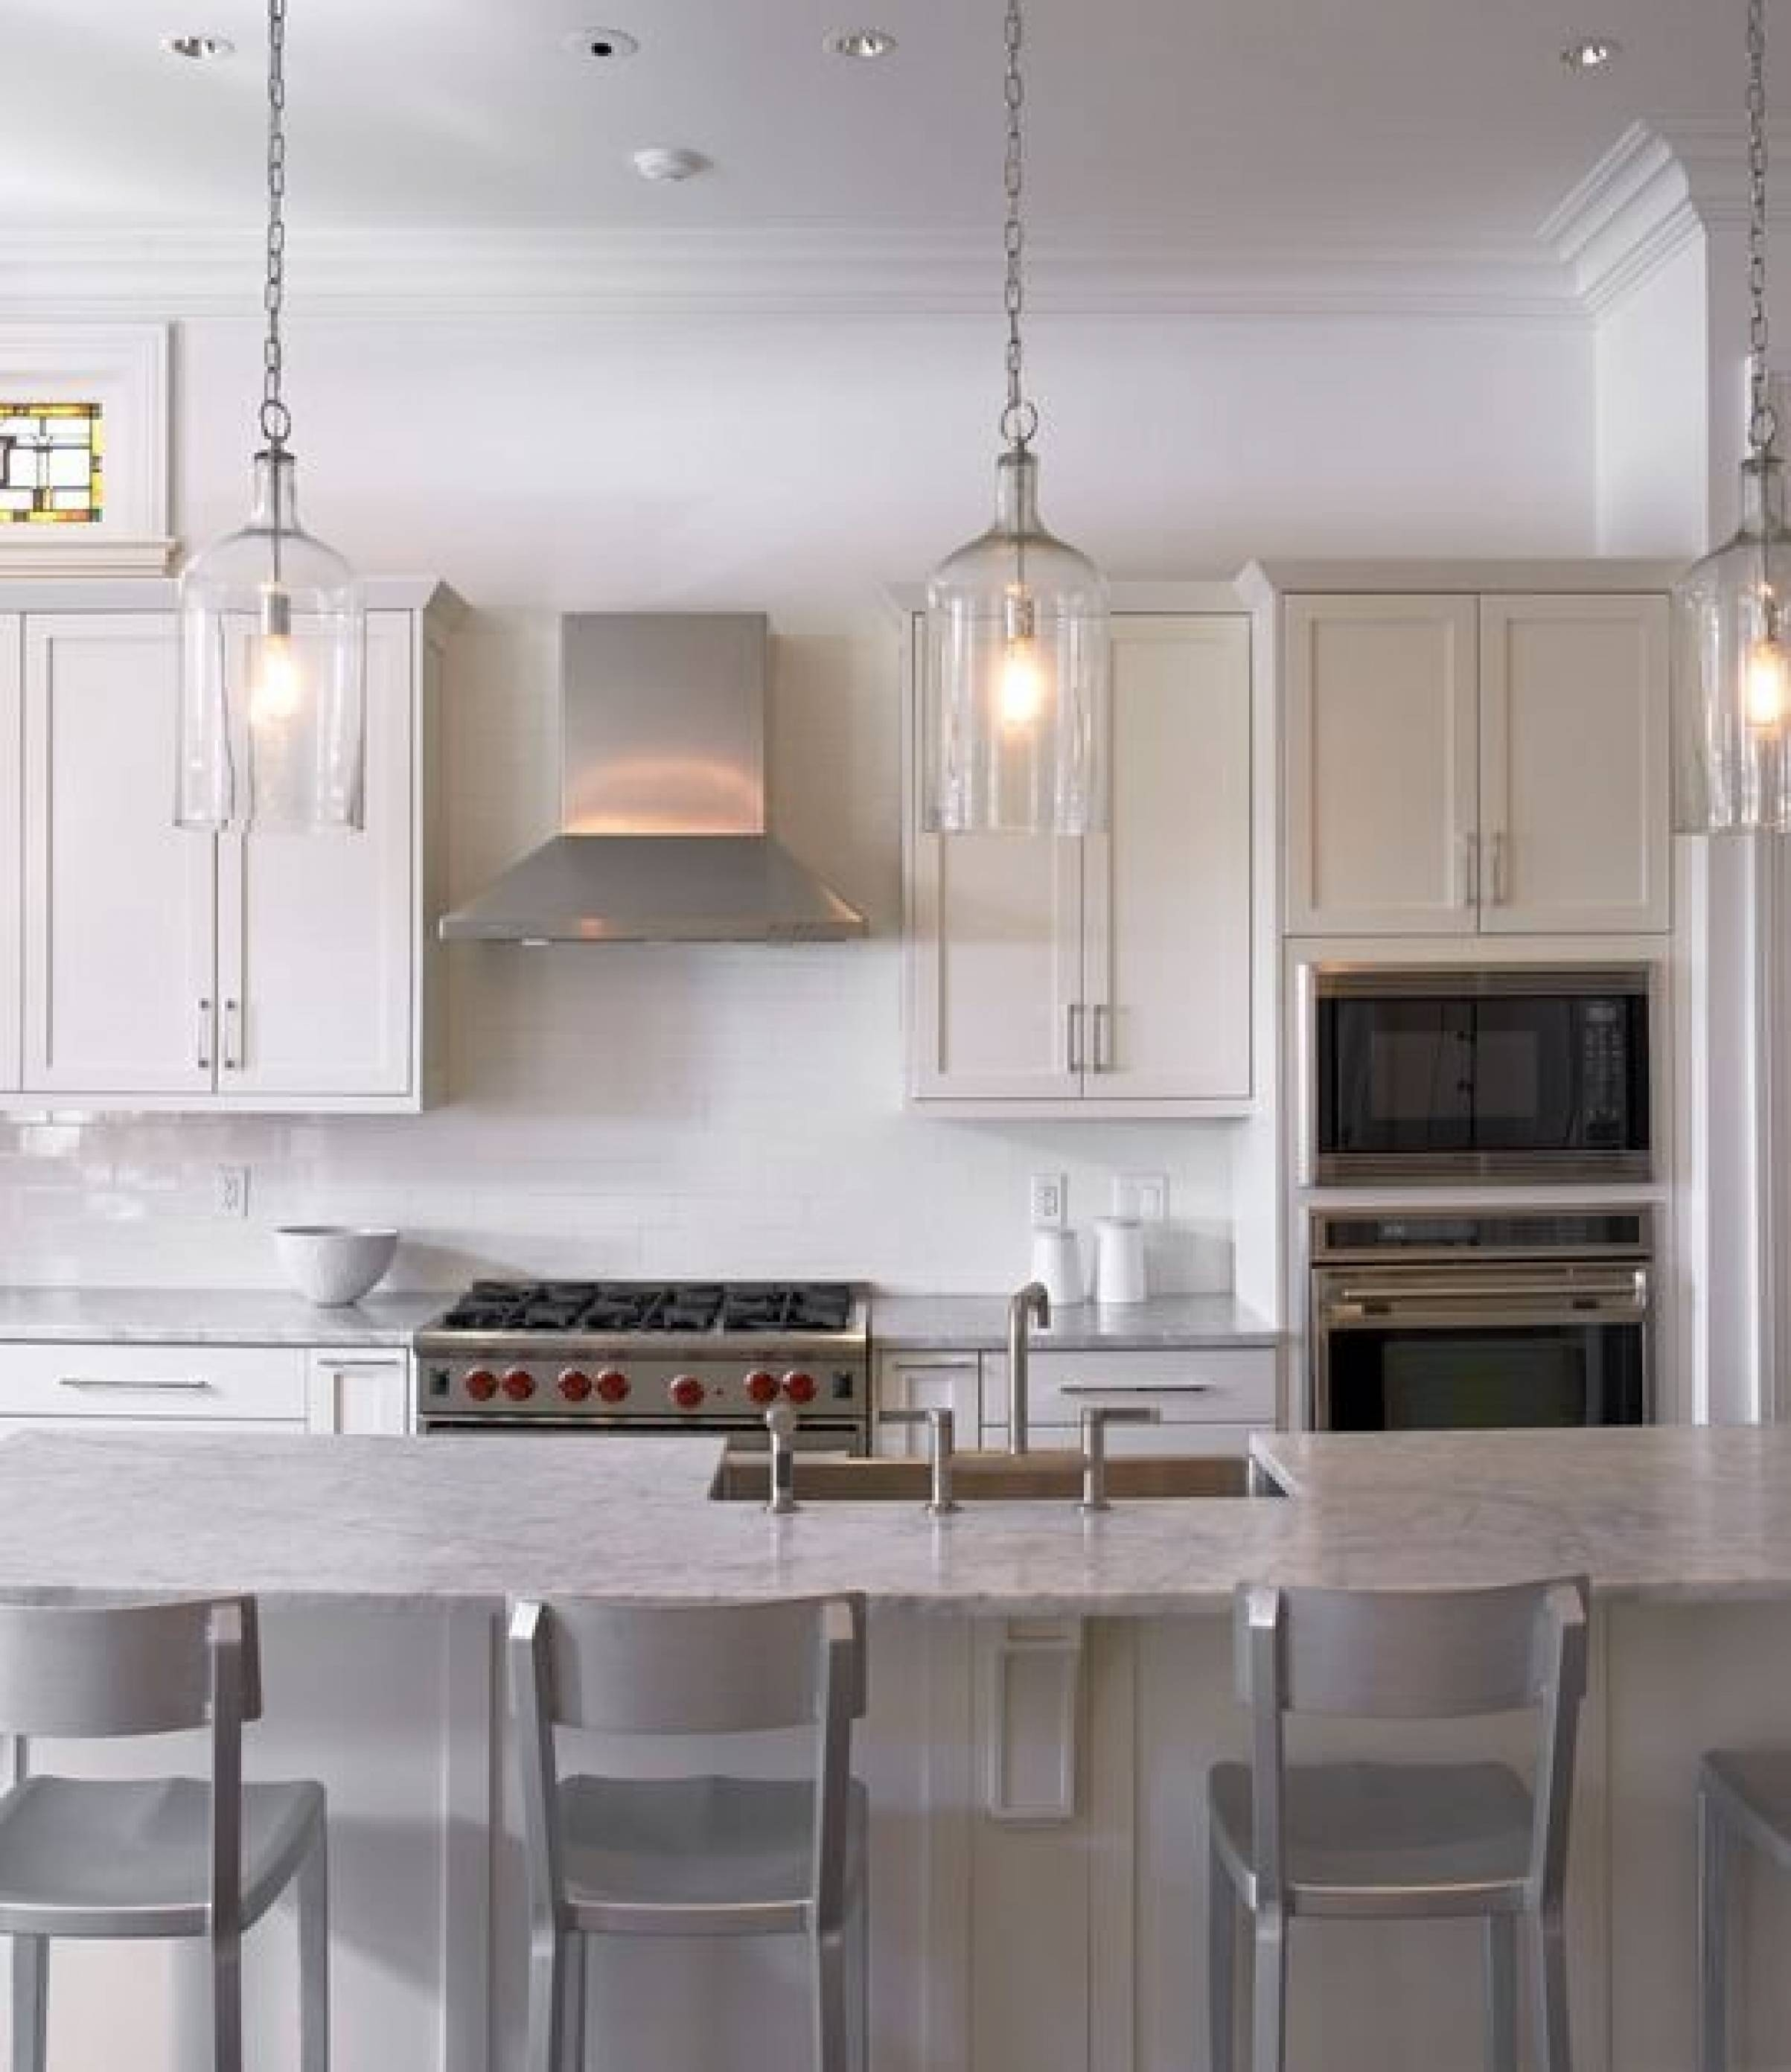 Elegant Glass Pendant Lights For Kitchen Island 96 With Additional within Mini Pendants for Kitchen Island (Image 4 of 15)